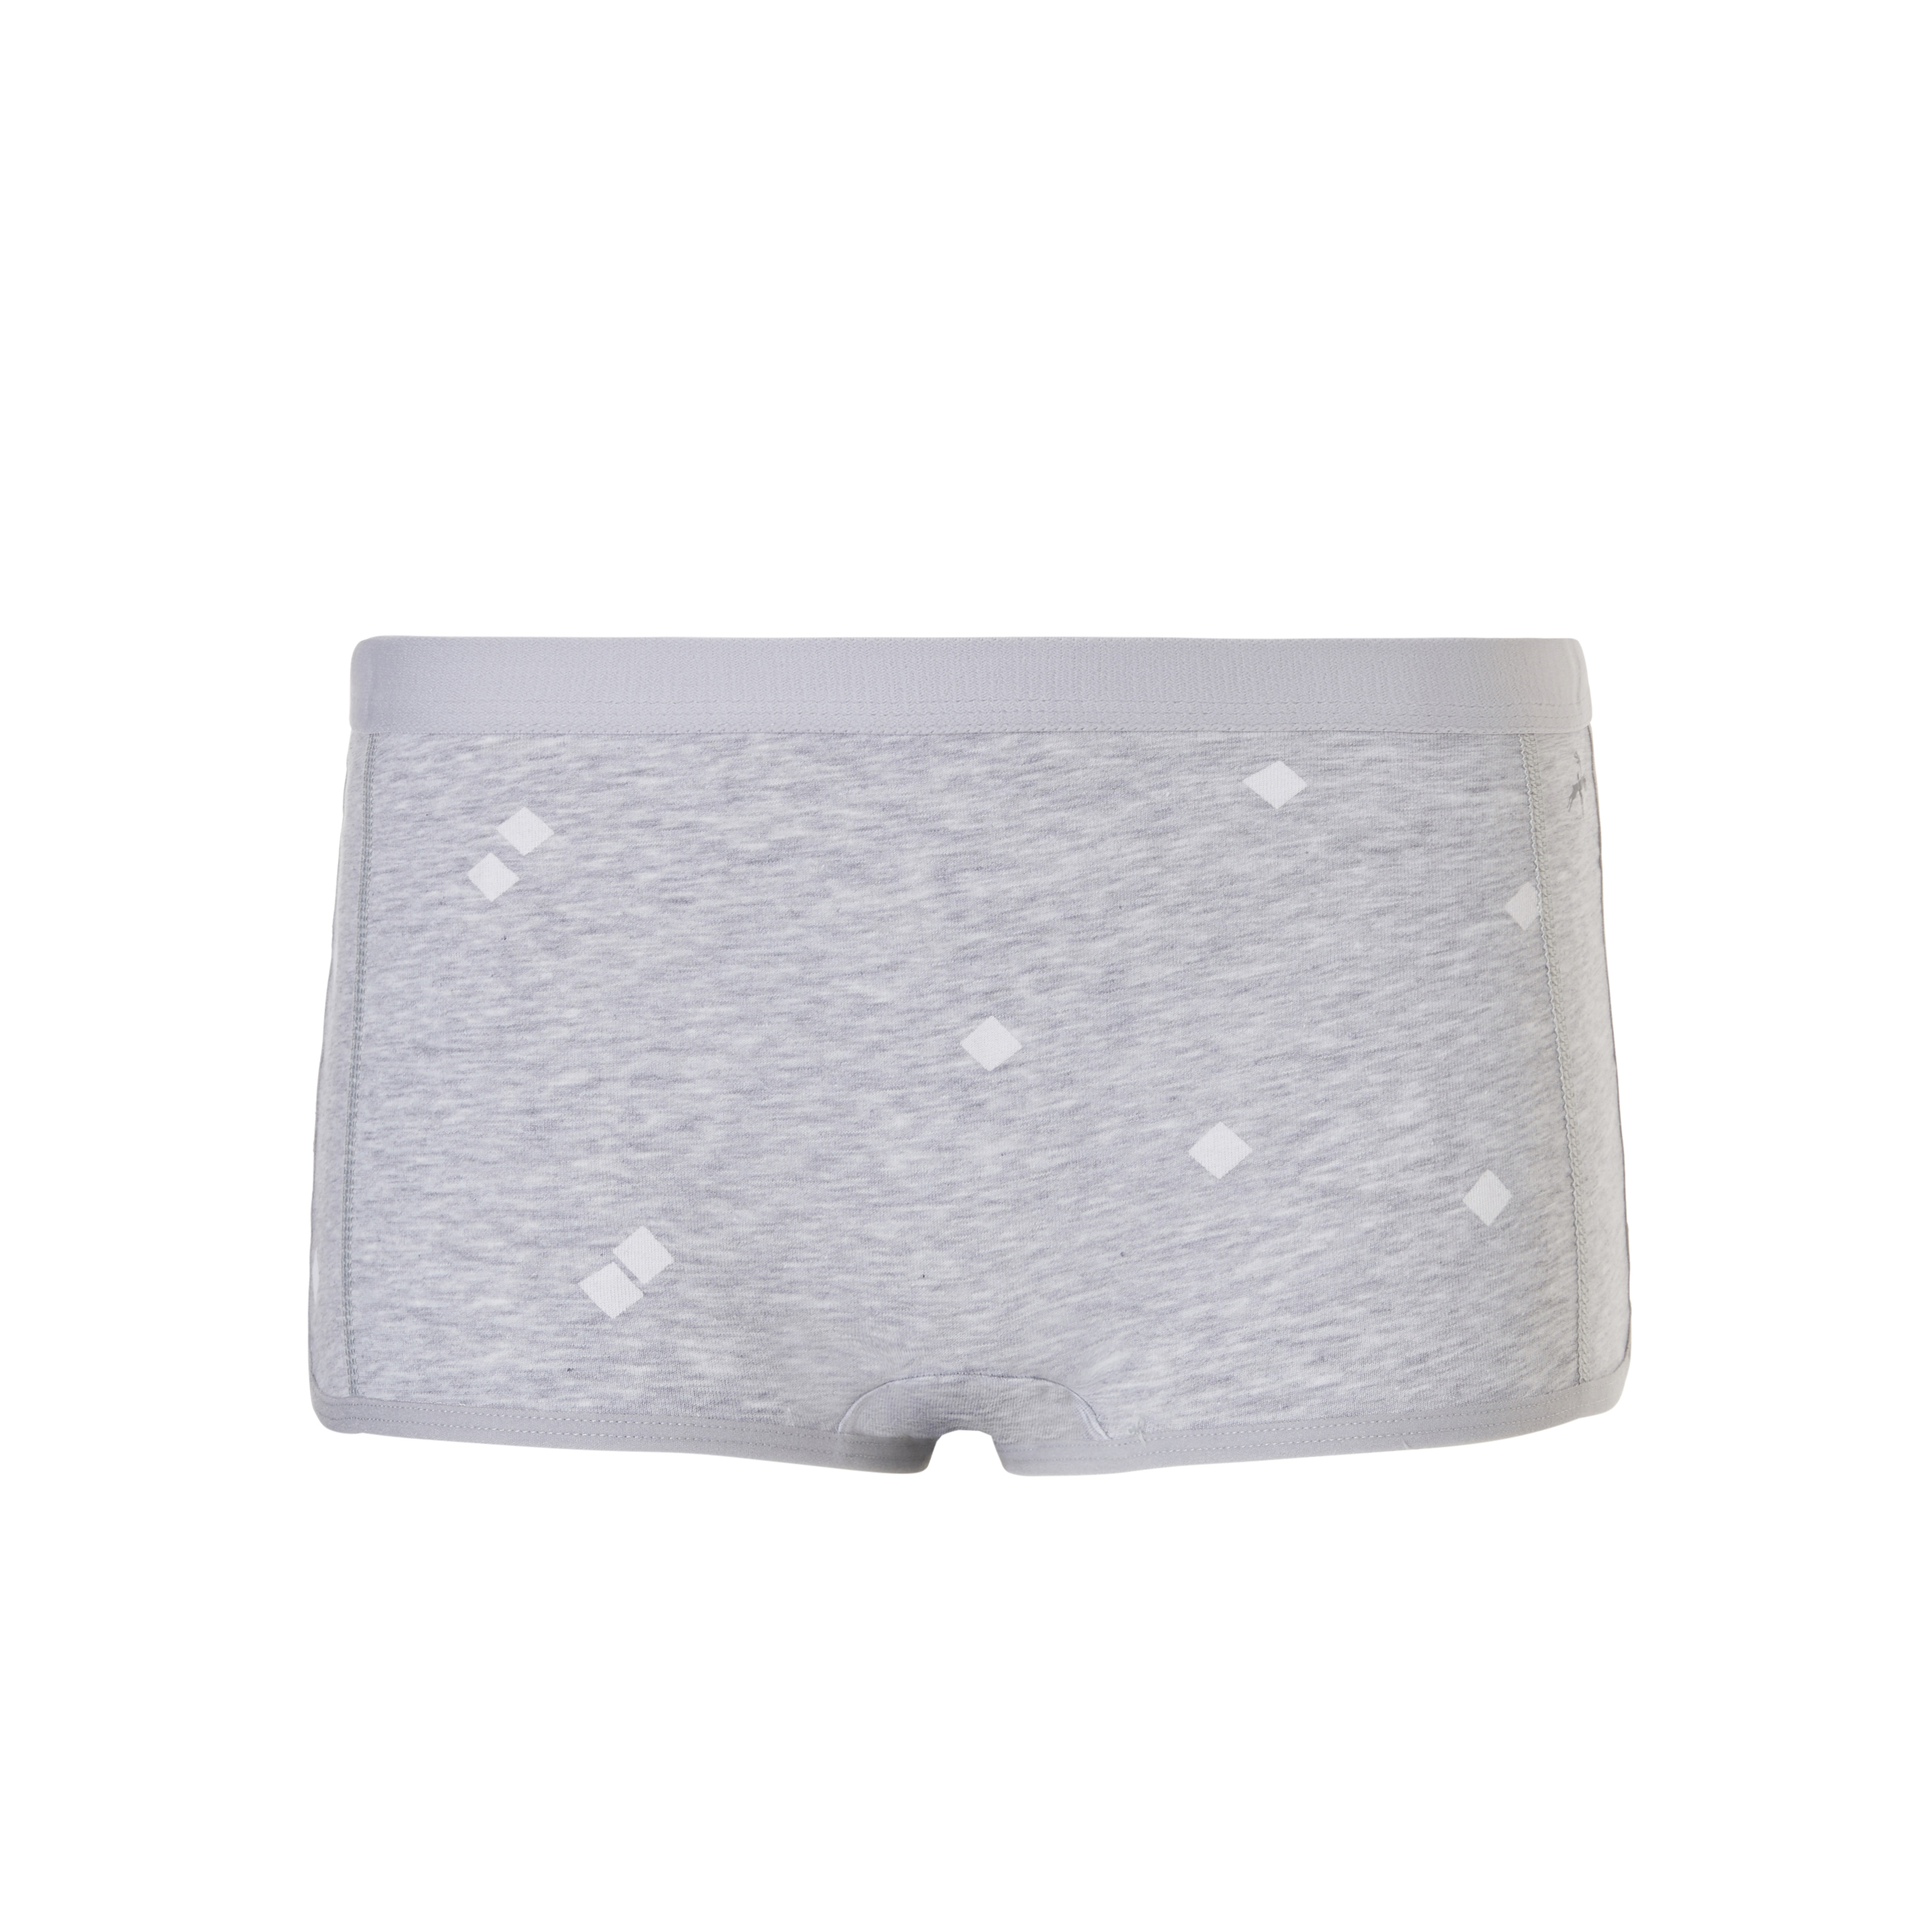 Ten Cate Girls shorts 13-18Y Ice Flakes Light Grey Melee